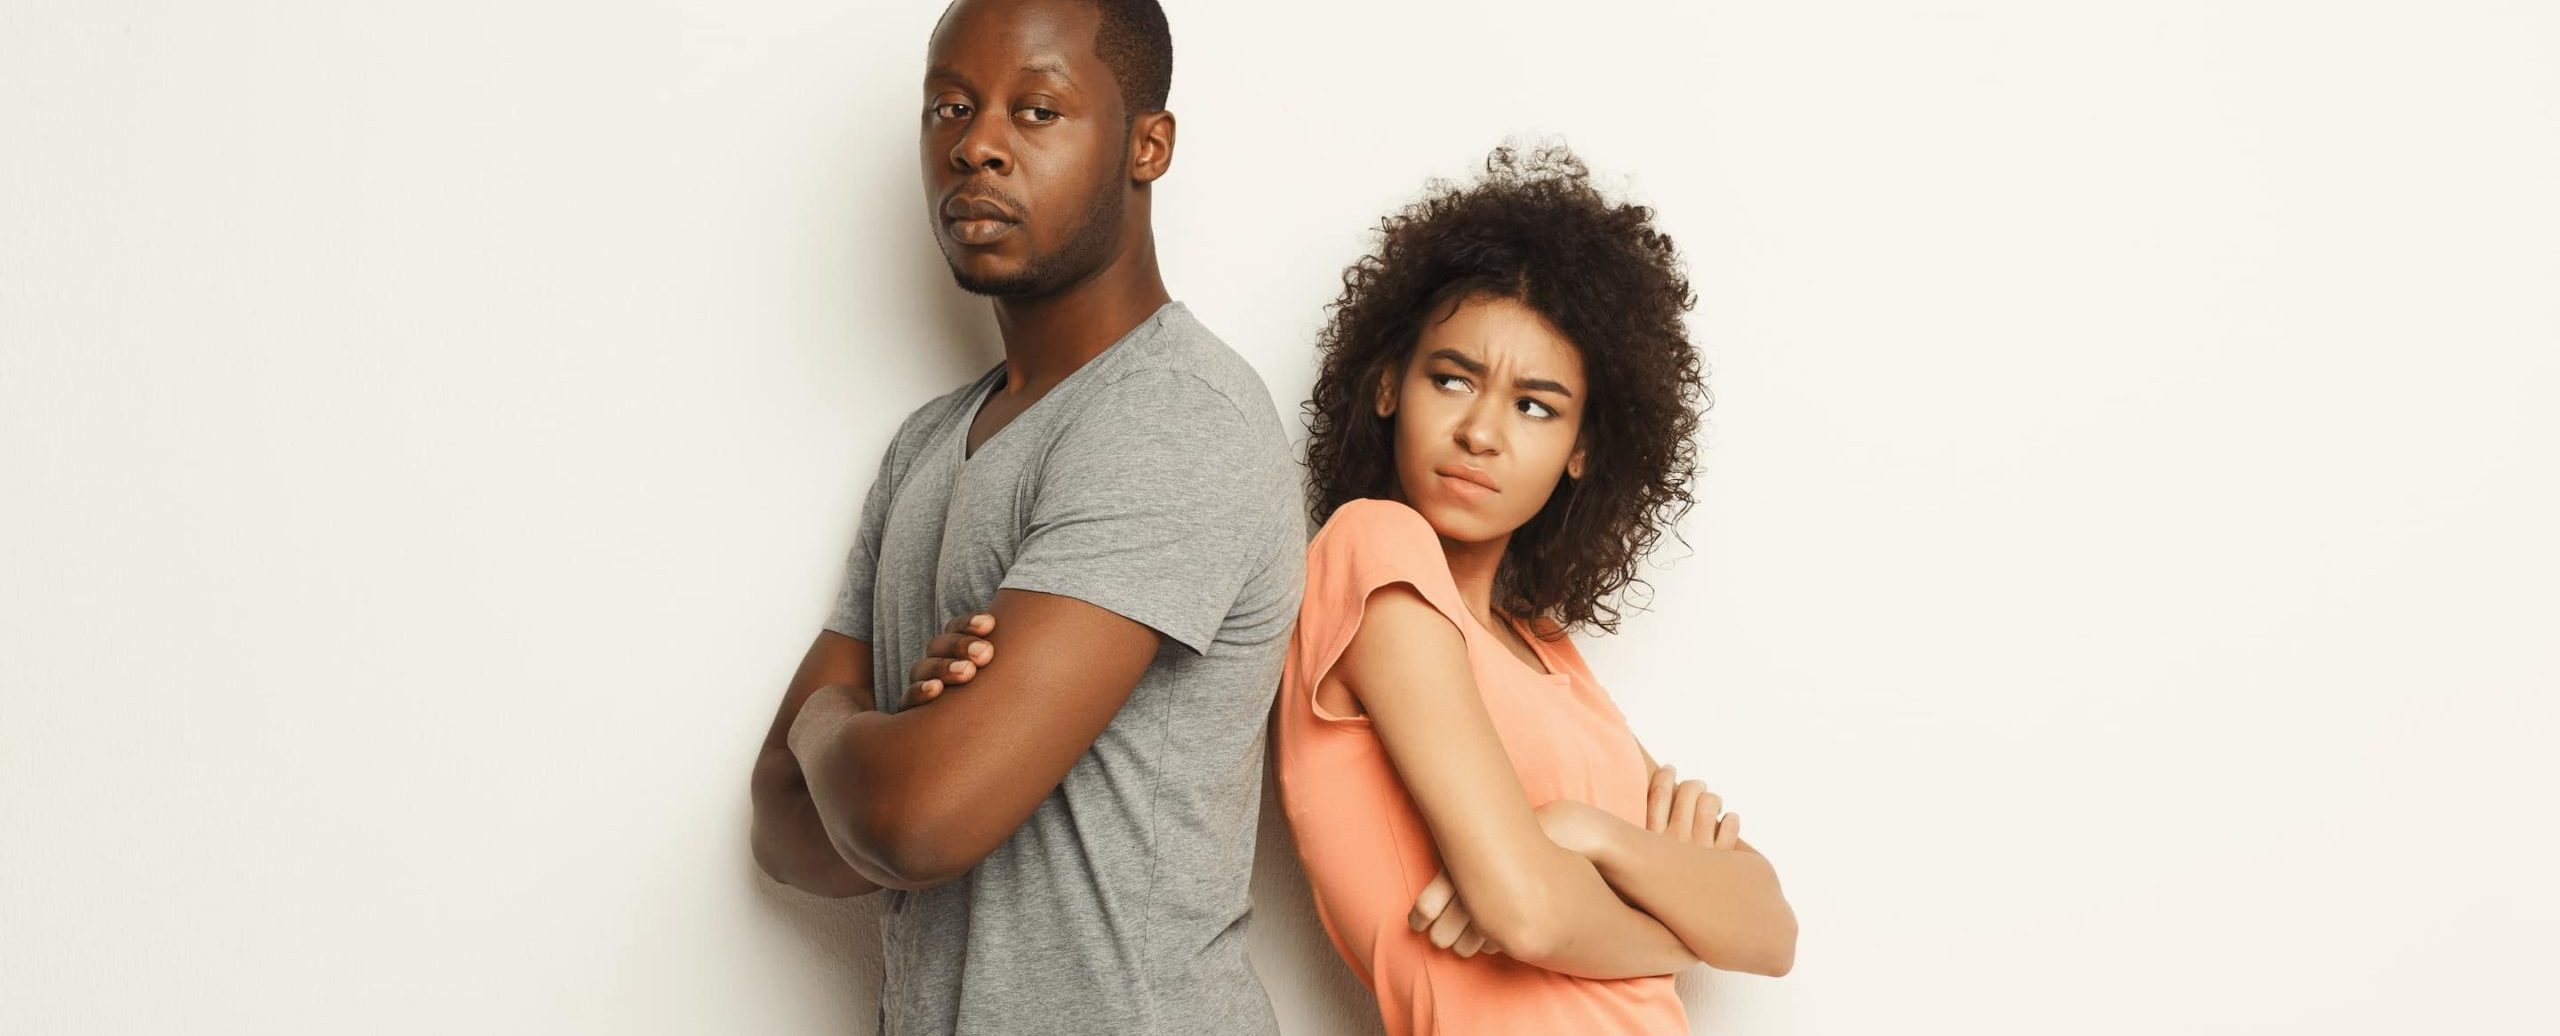 Can You Take A Break From Your Relationship?